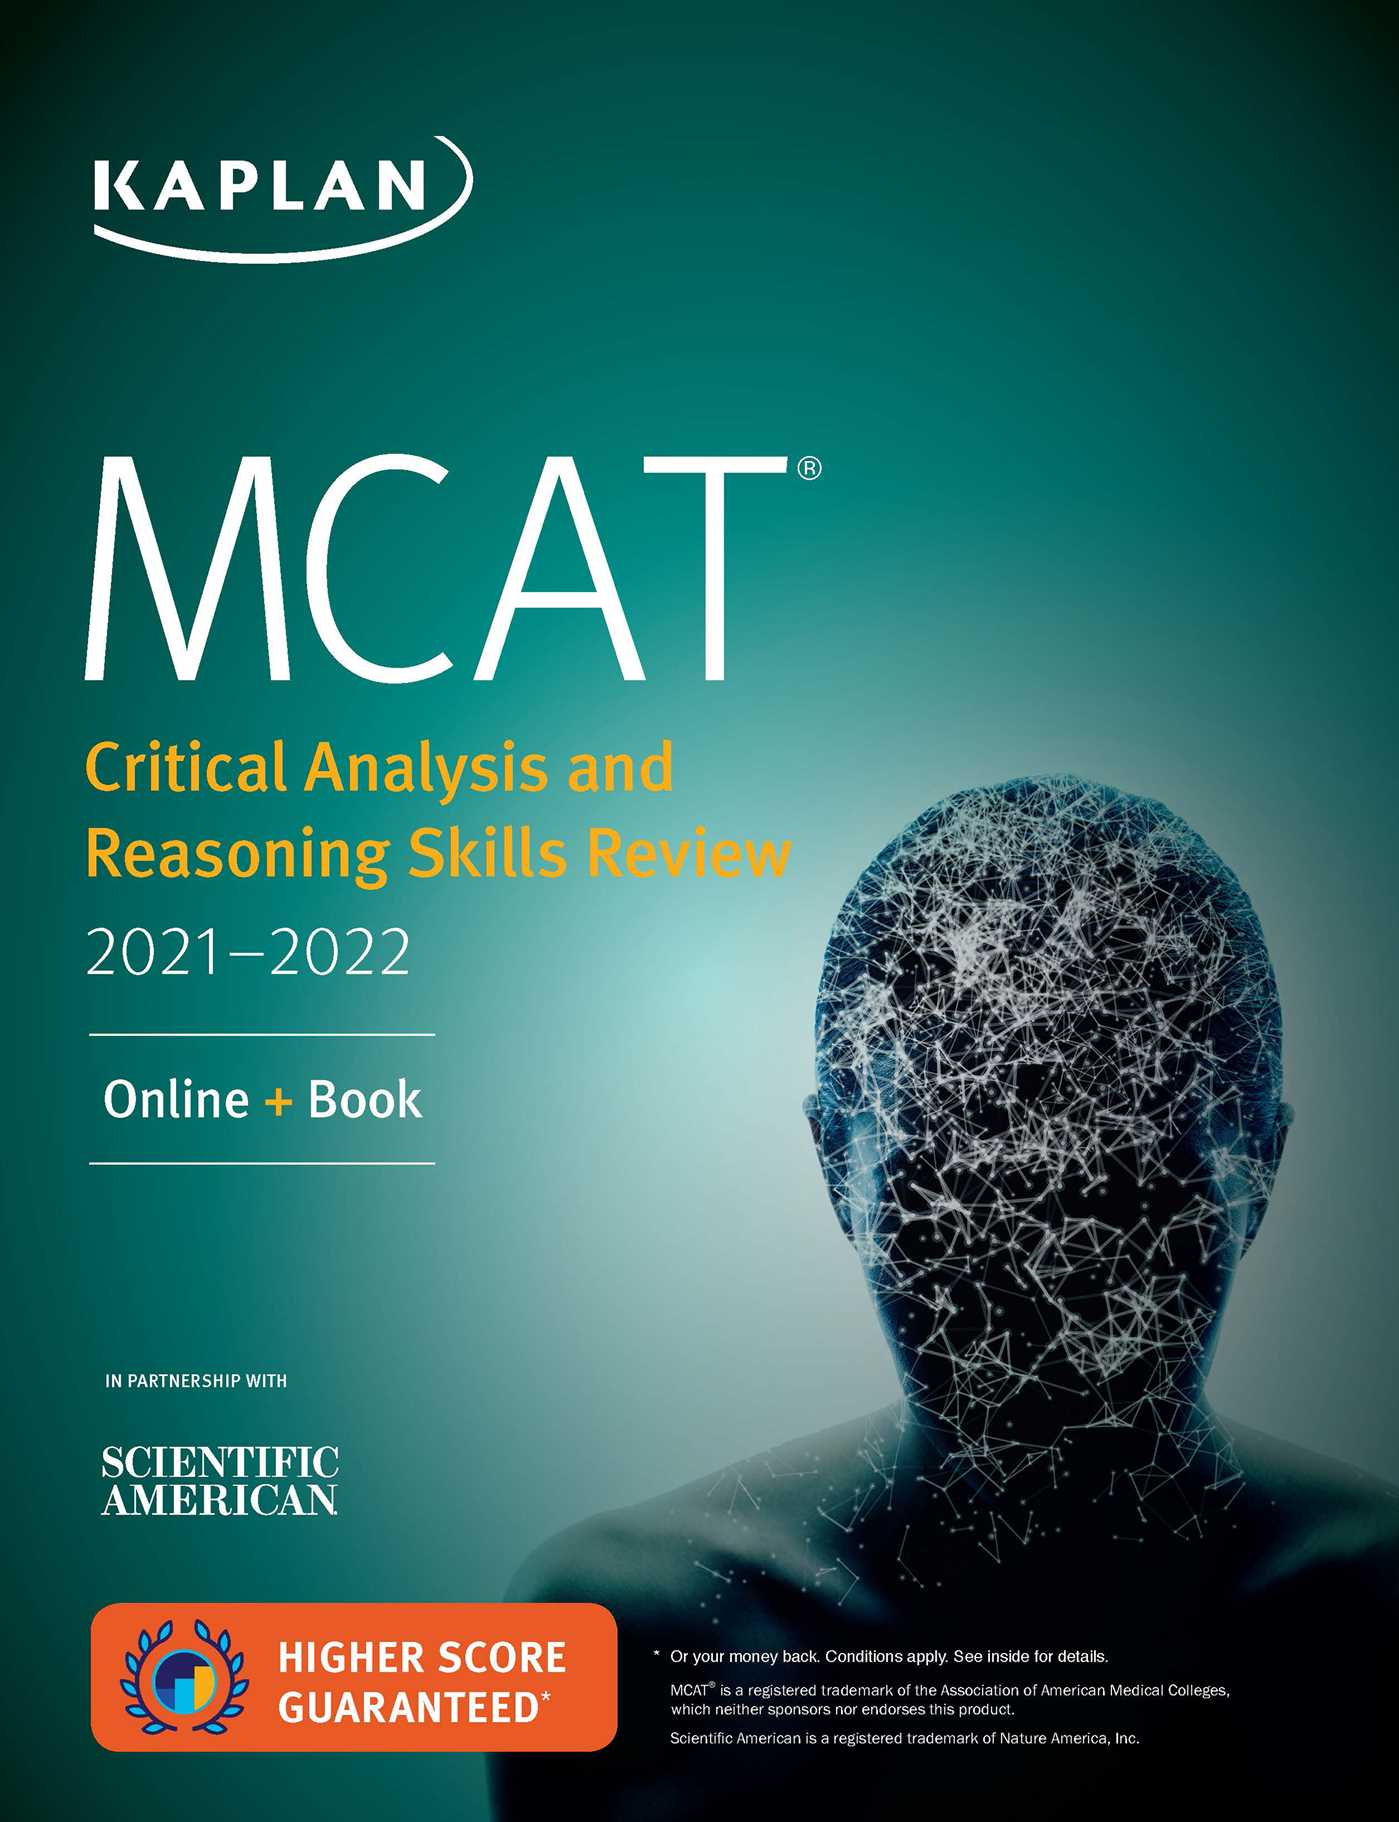 MCAT Critical Analysis and Reasoning Skills Review 2021-2022: Online + Book